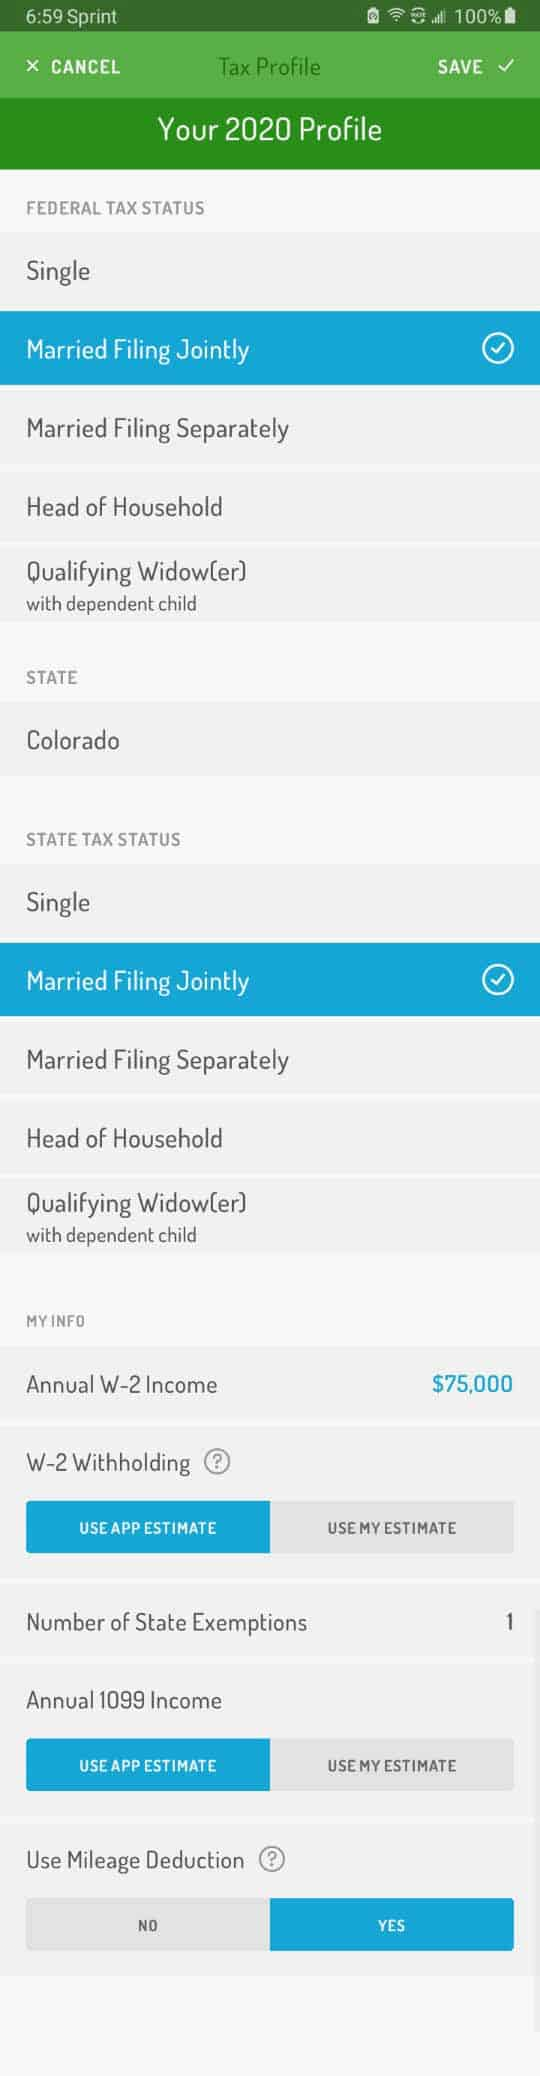 Hurdlr's tax profile screen with information including filing status, exemptions, additional income.